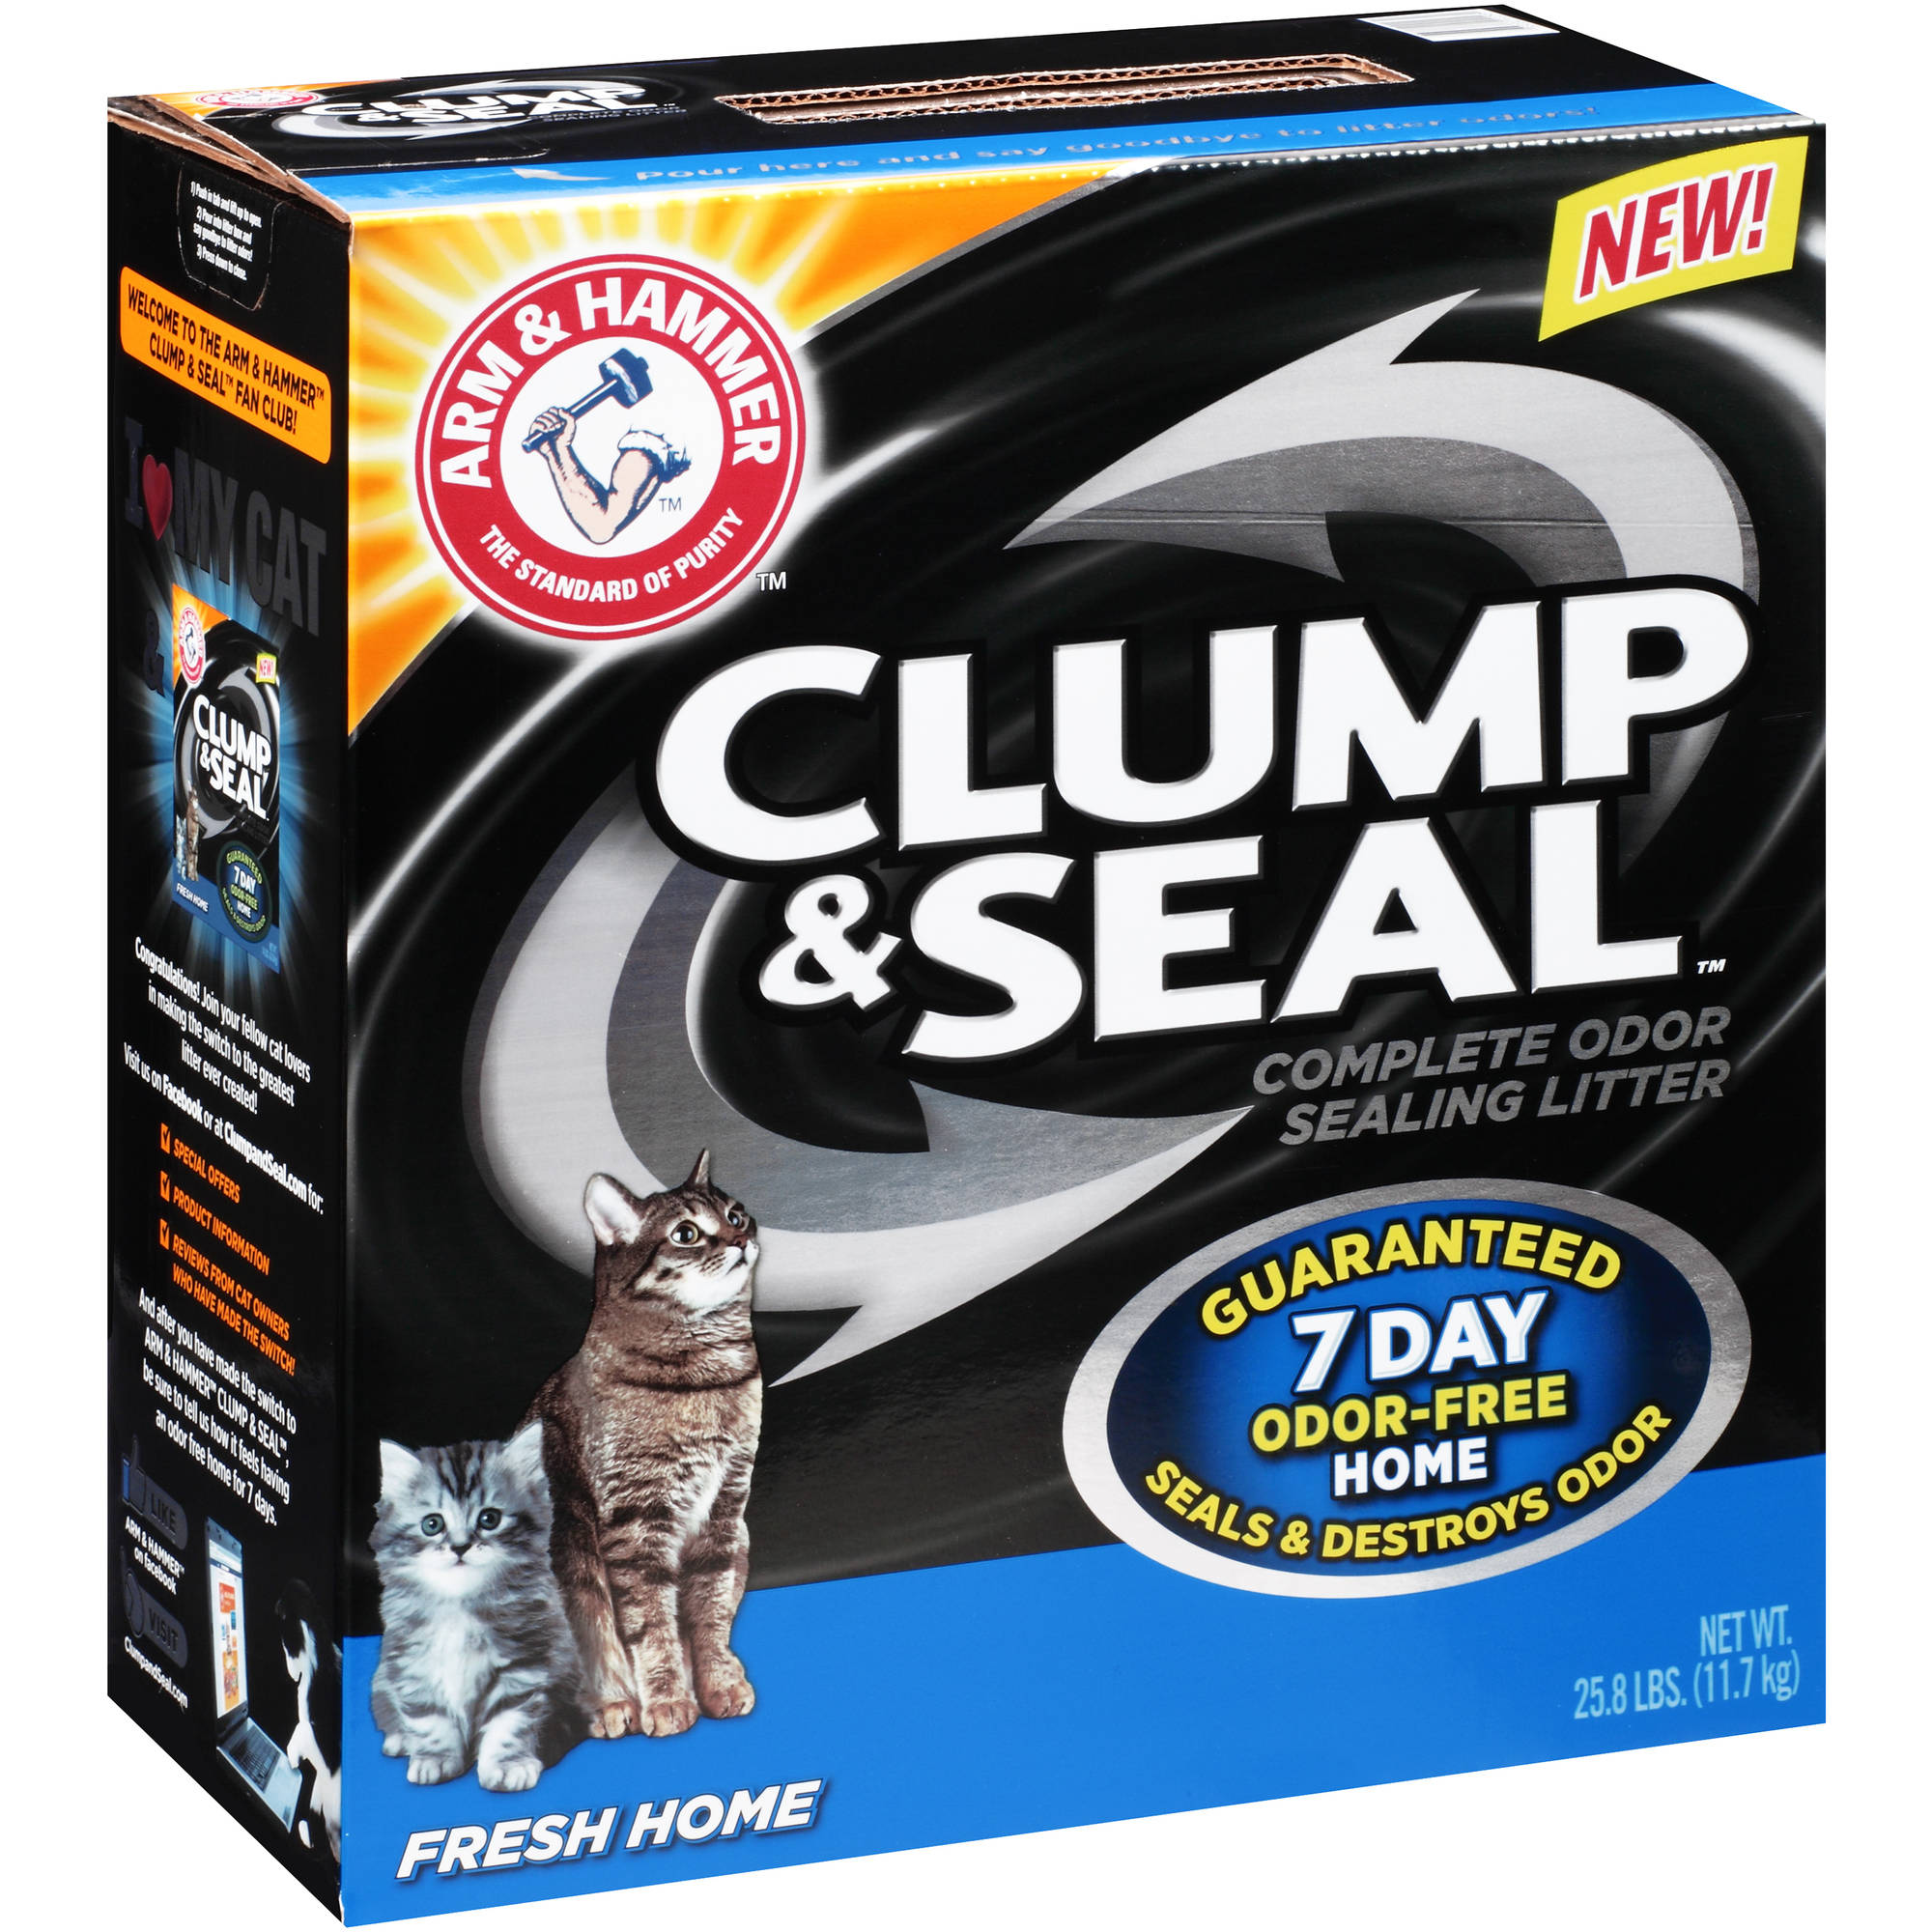 Arm & Hammer Clump & Seal Fresh Home Complete Odor Sealing Cat Litter 25.8 Lb. Box